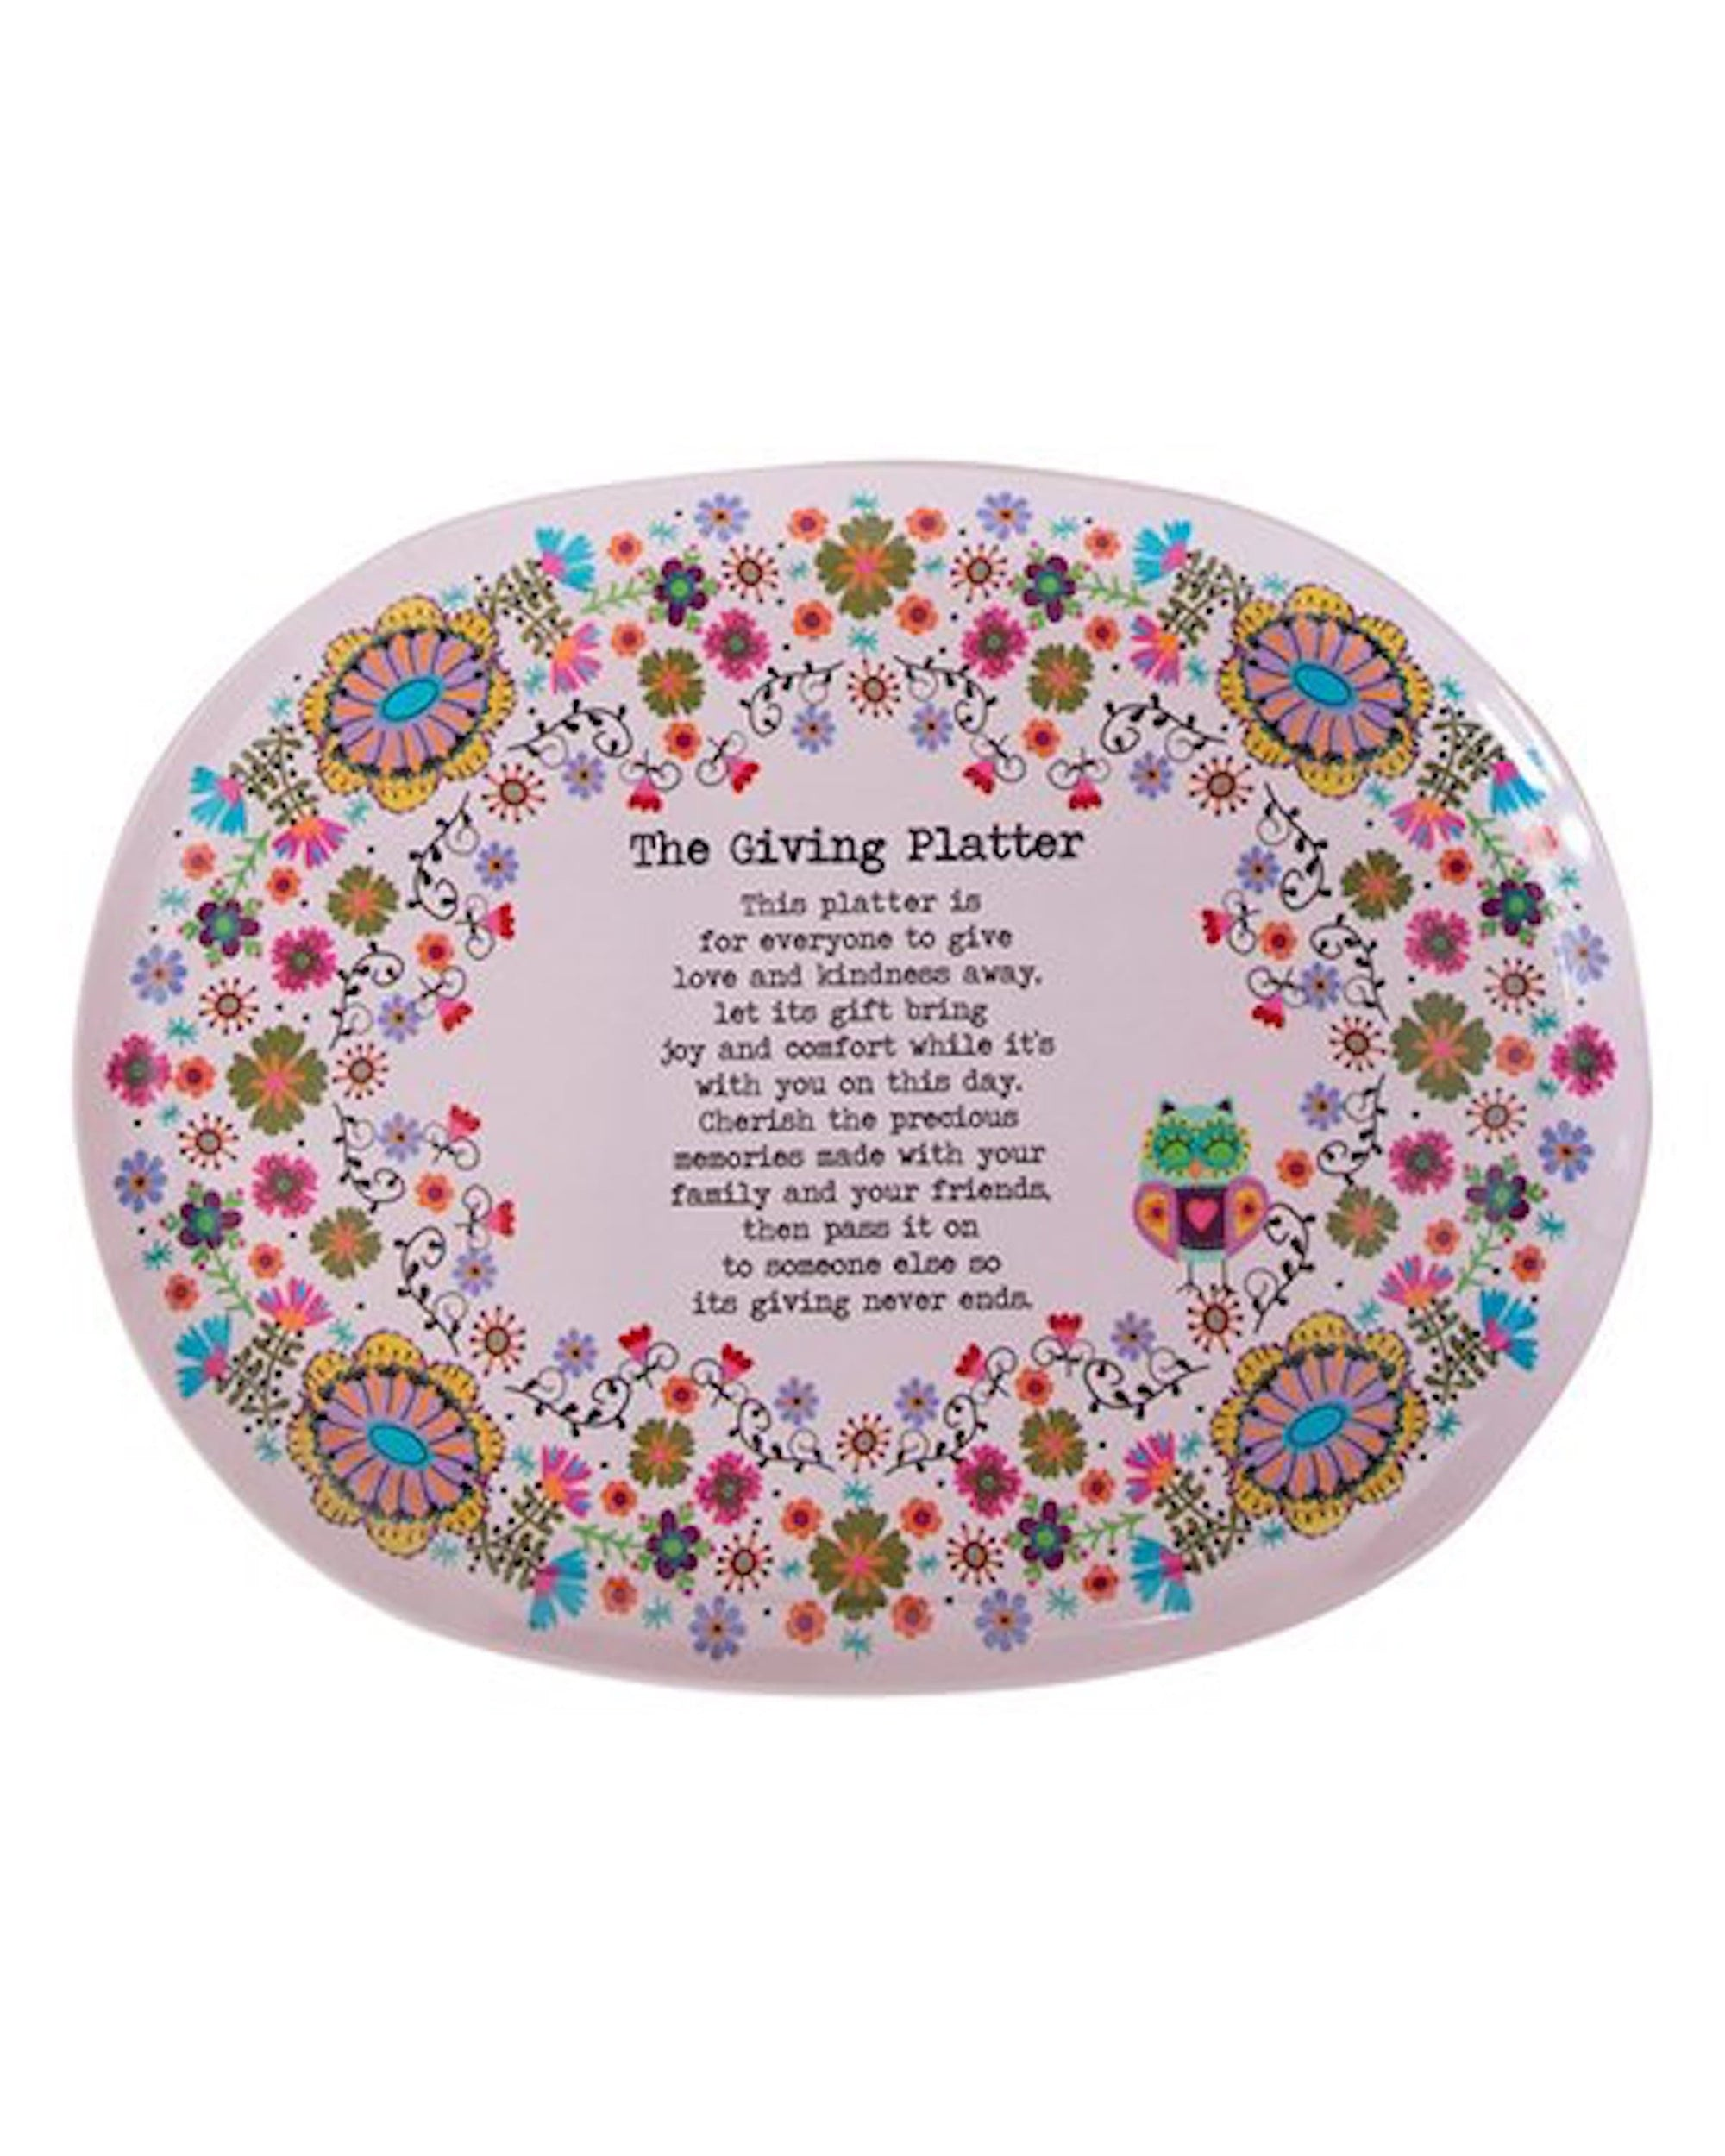 The Giving Platter